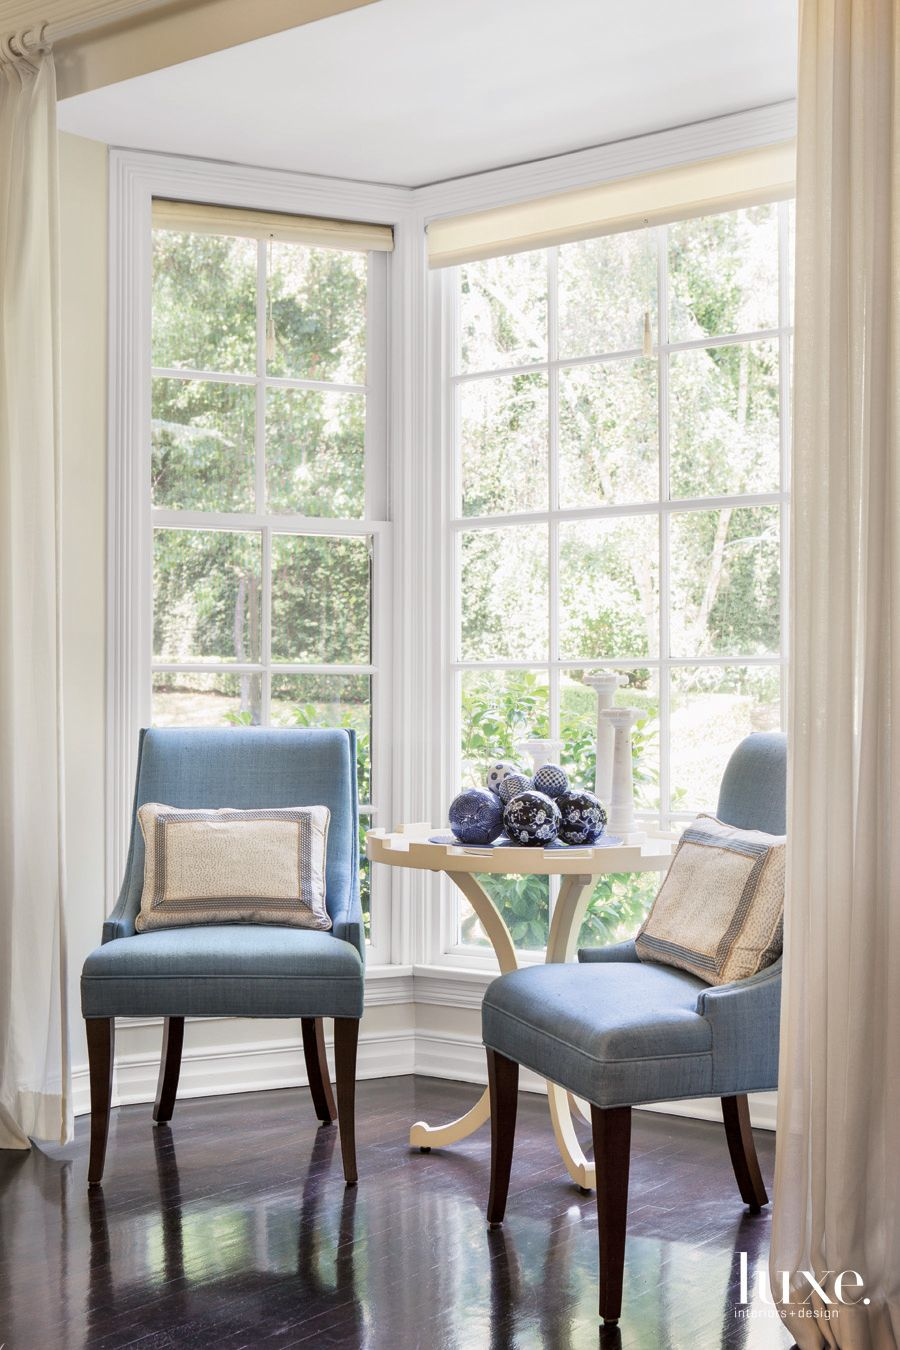 Traditional Neutral Living Room Vignette with French Pedestal Table